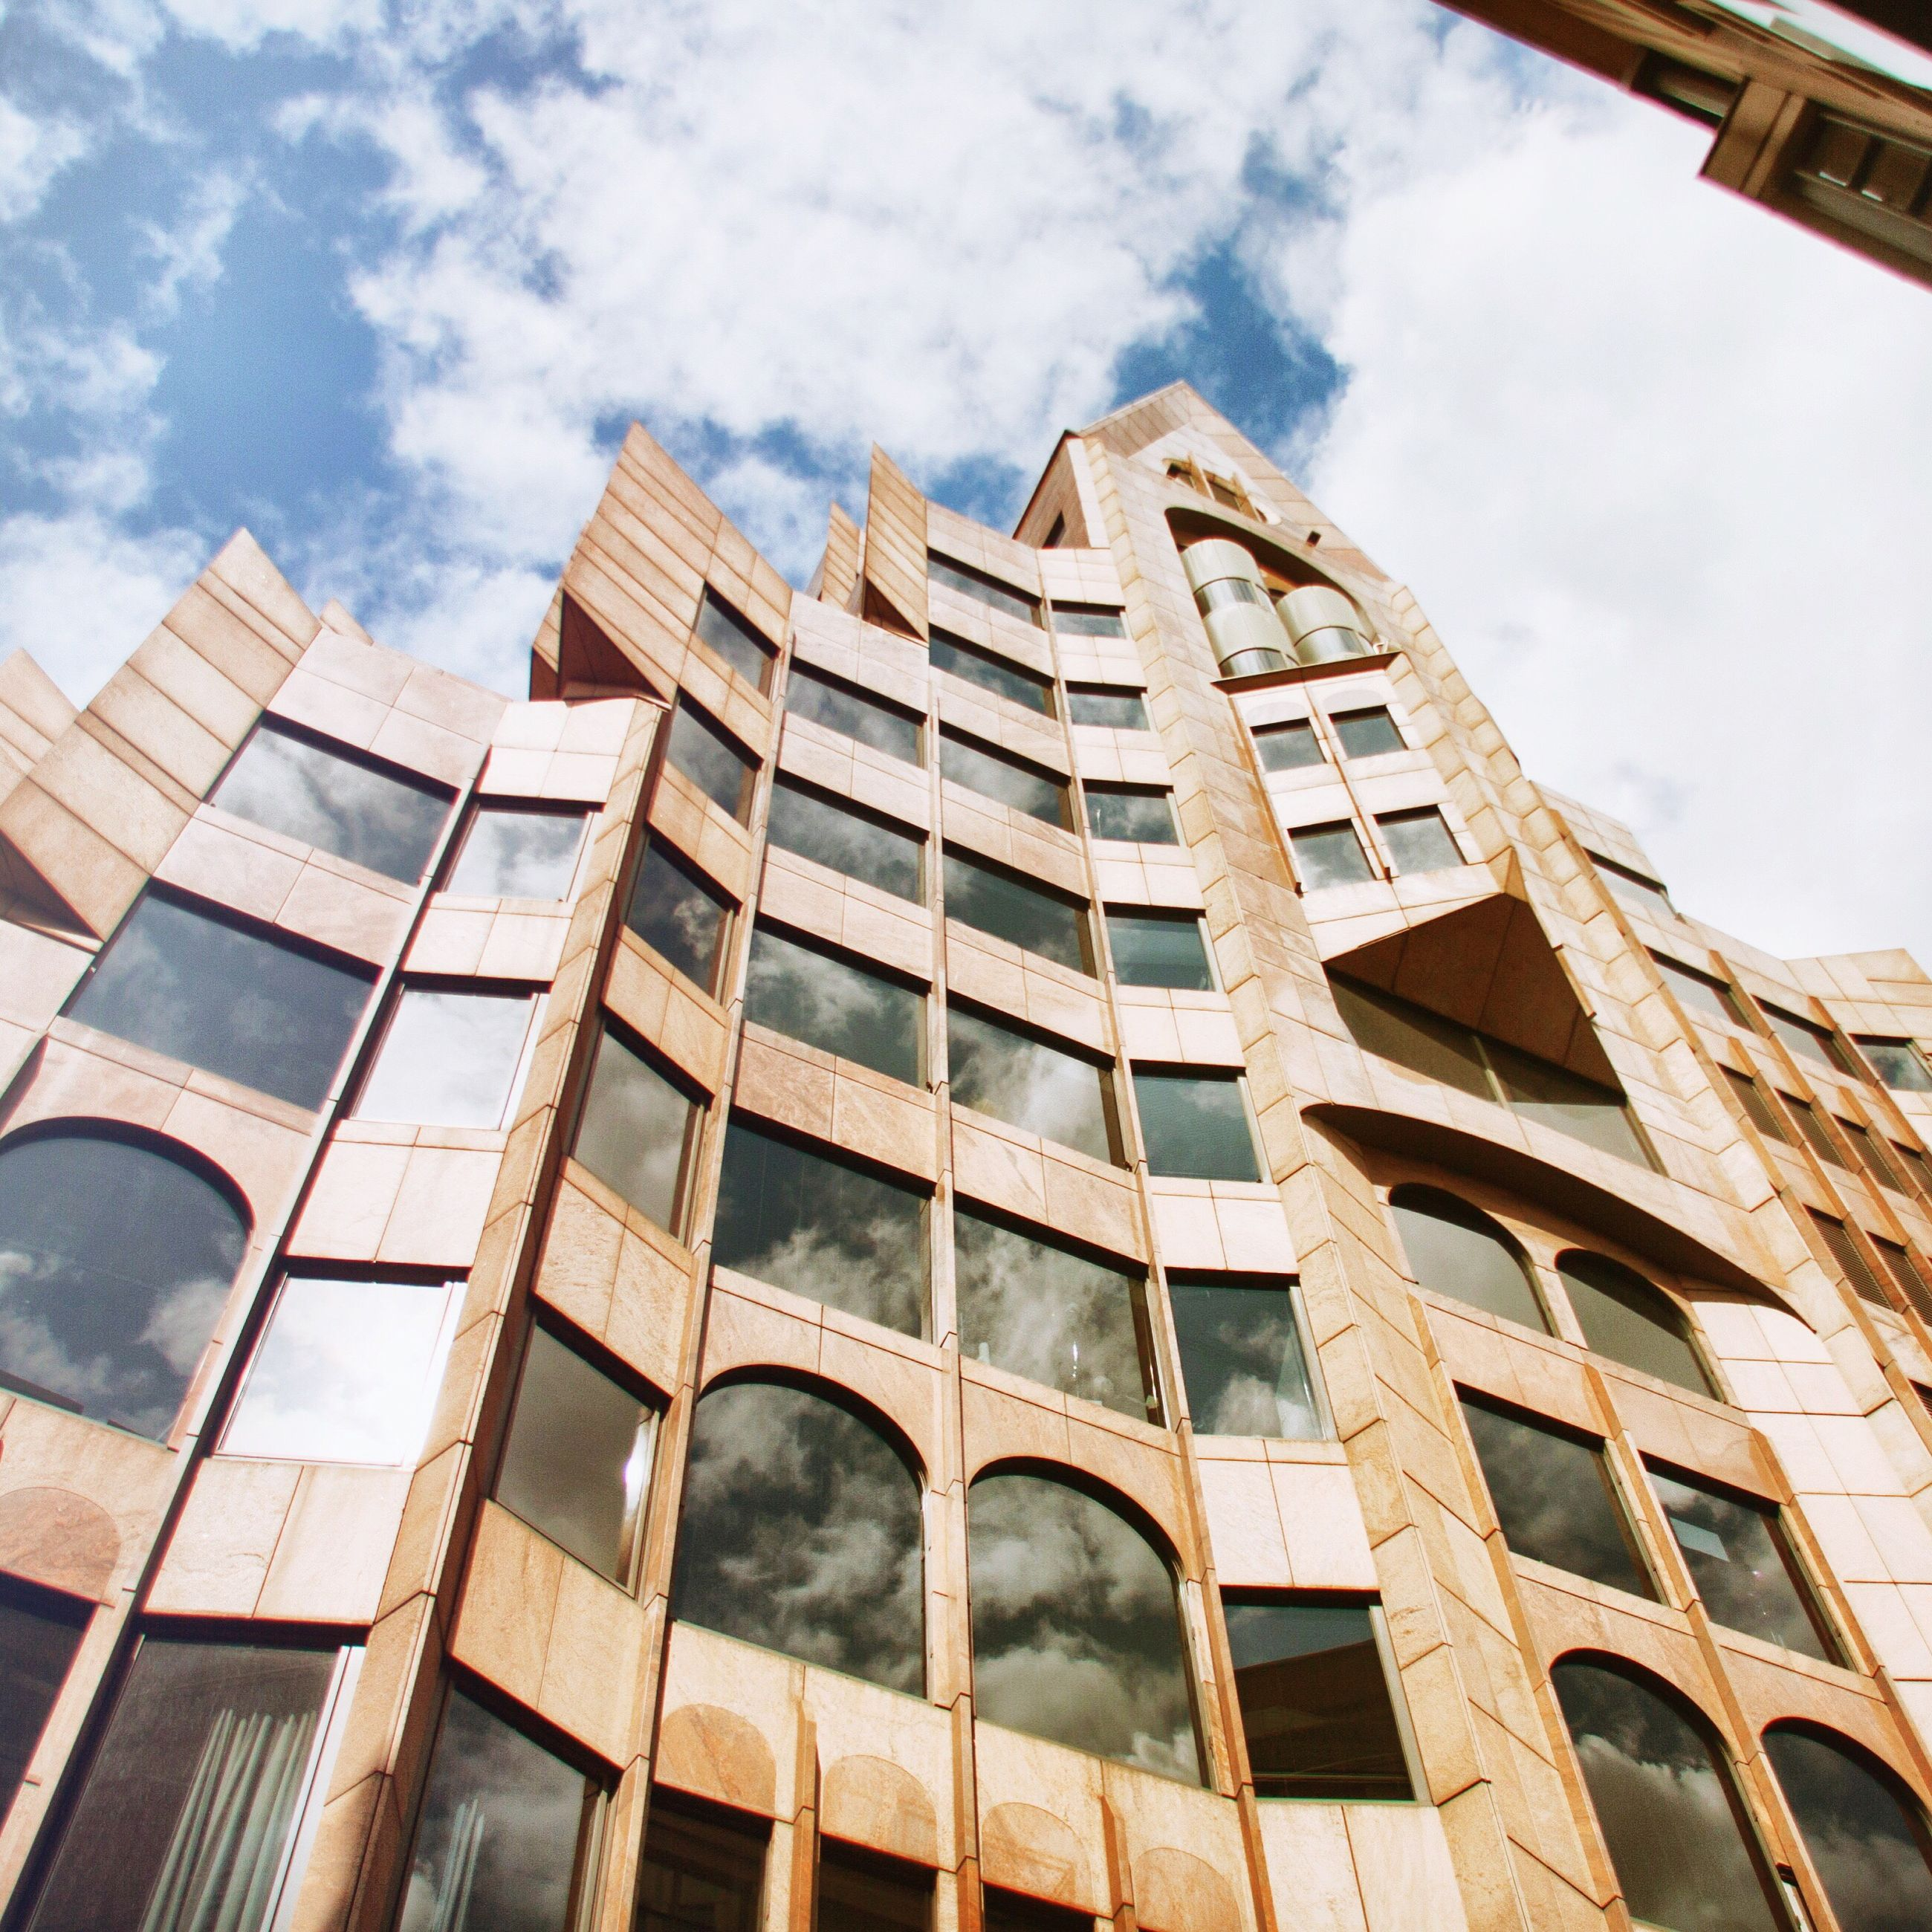 architecture, building exterior, built structure, low angle view, sky, window, cloud - sky, city, tall - high, office building, cloud, repetition, tower, building, skyscraper, in a row, modern, day, building story, outdoors, architectural feature, cloudy, tall, city life, geometric shape, spire, development, no people